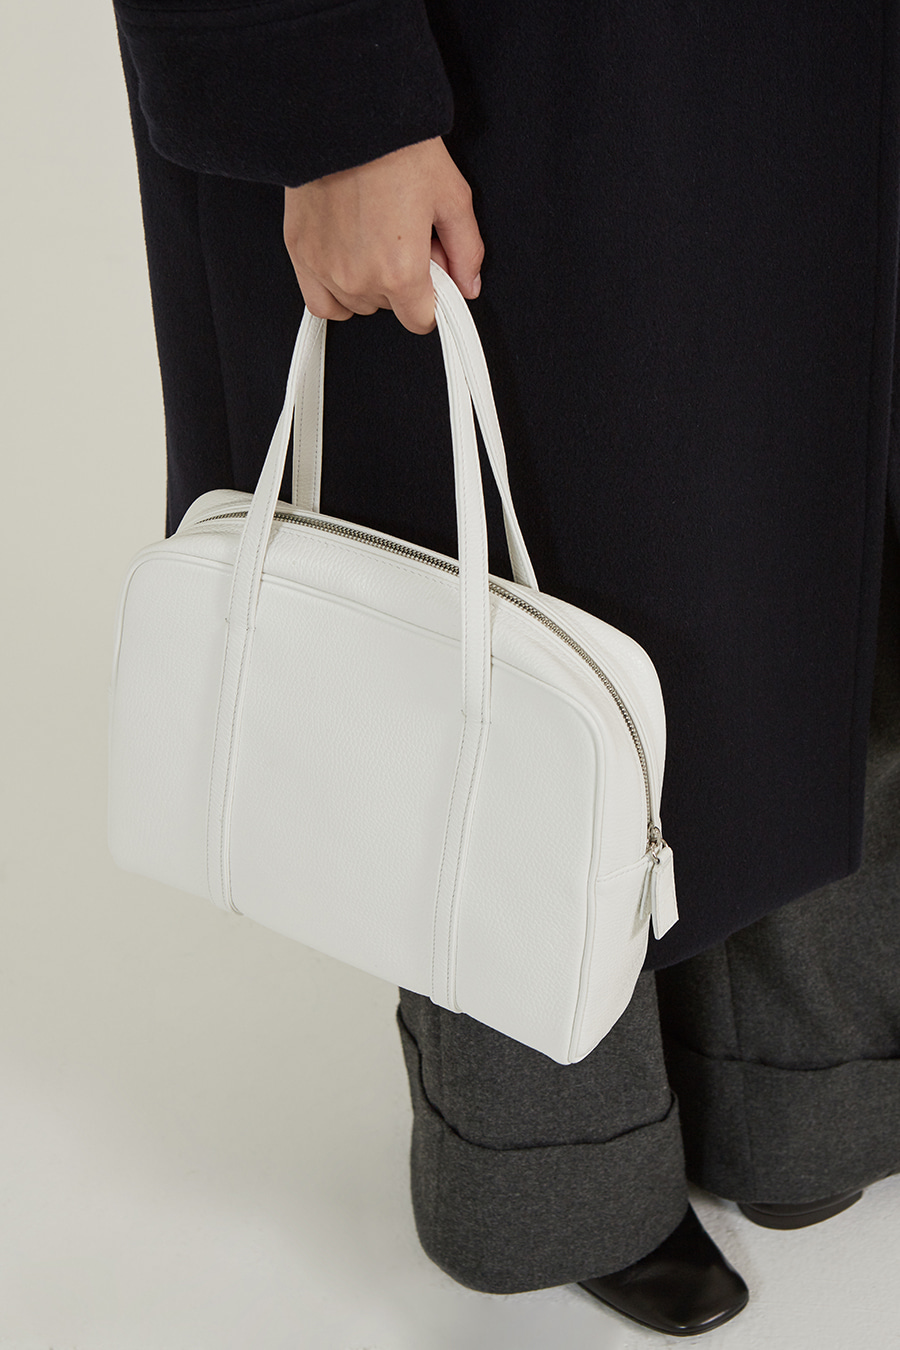 4th) Boyy Bag White